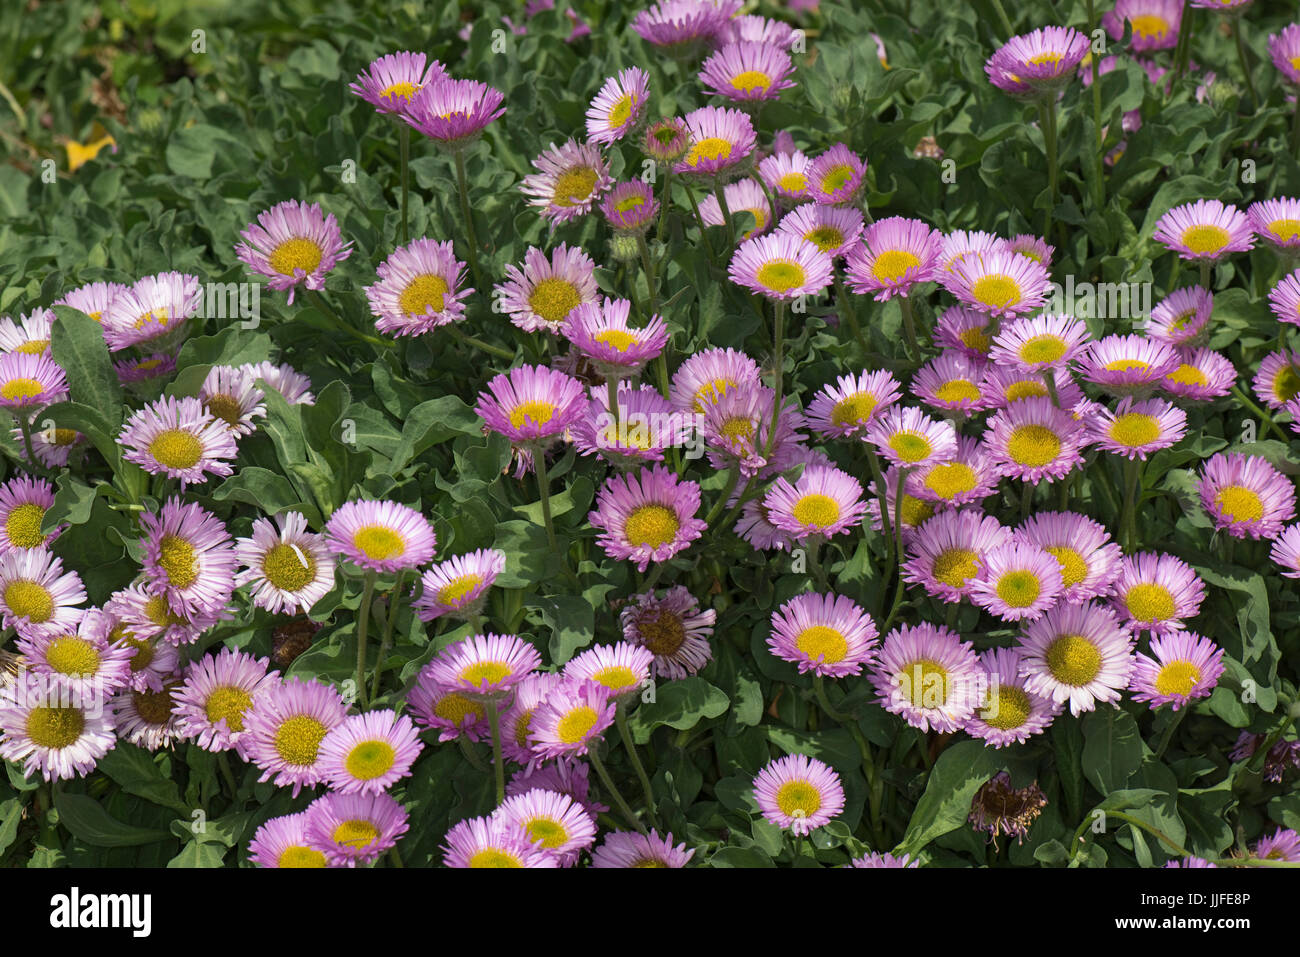 Pink flowers with yellow centres set against green leaves of this prostrate, spreading, rockery alpine plant, Erigeron - Stock Image